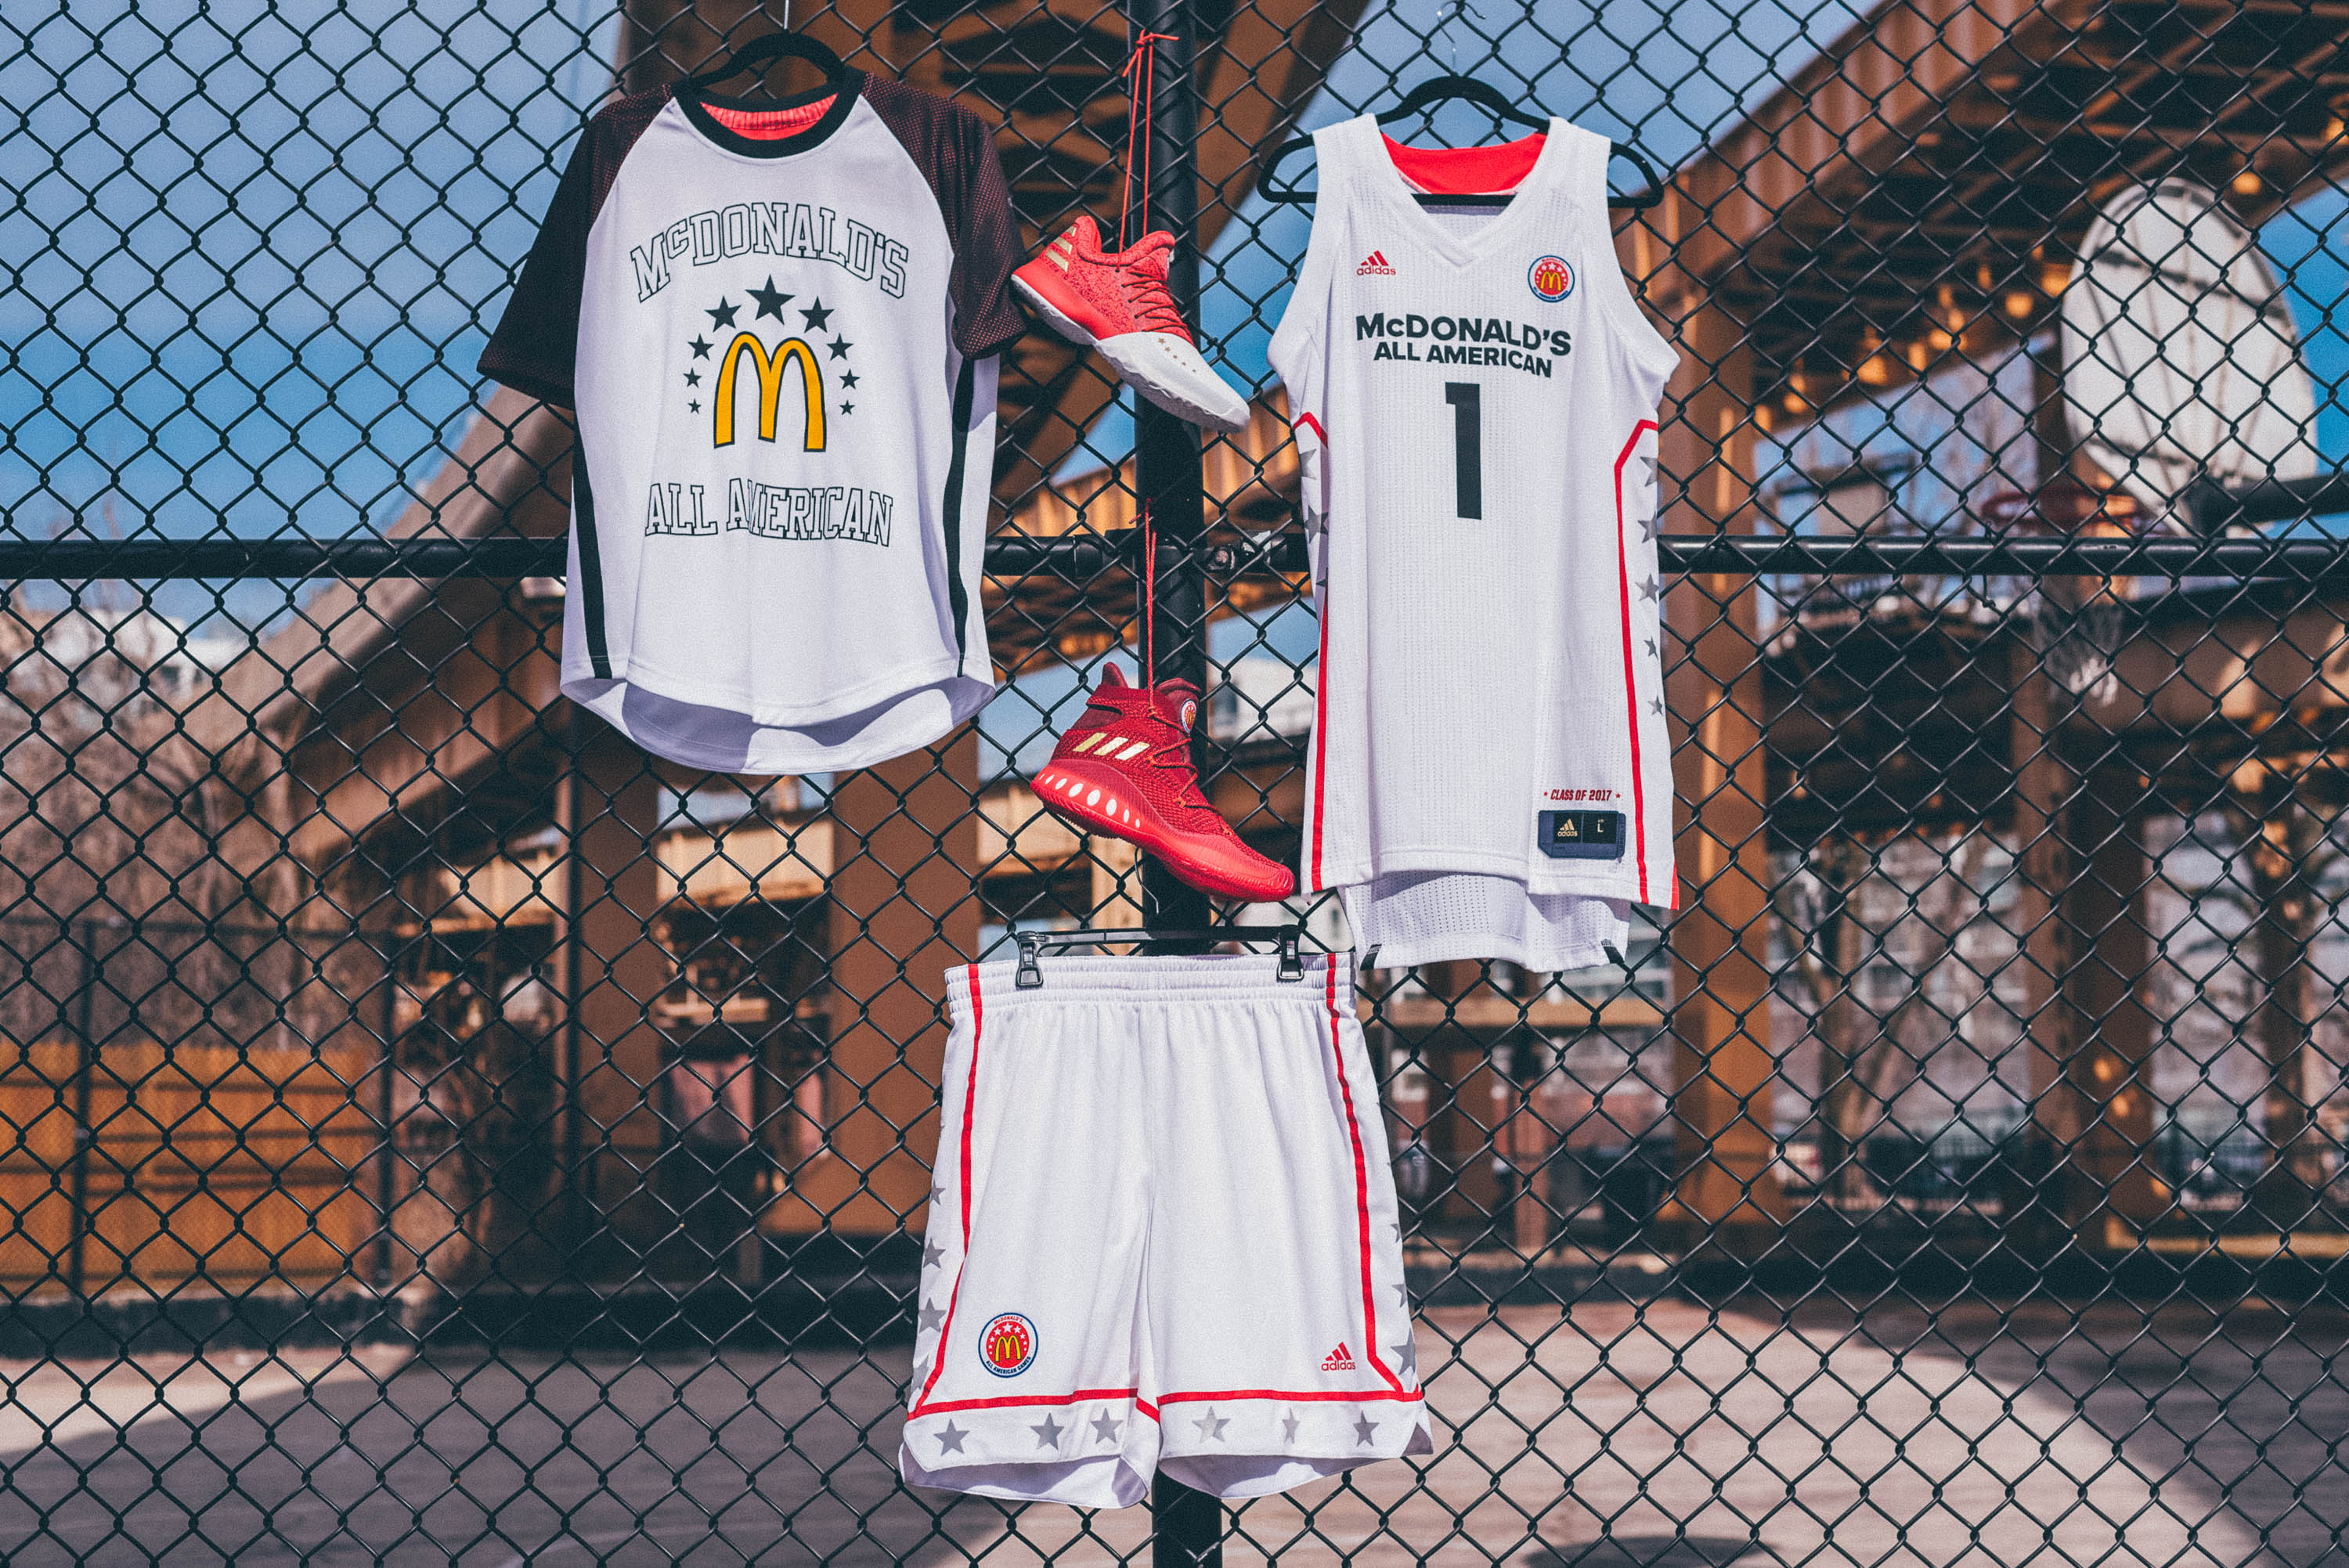 e95b1cfe3 Girl s West Jersey for McDonald s All American Games. Girl s JamFest Jersey  for McDonald s All American Games. Adidas unveiled ...